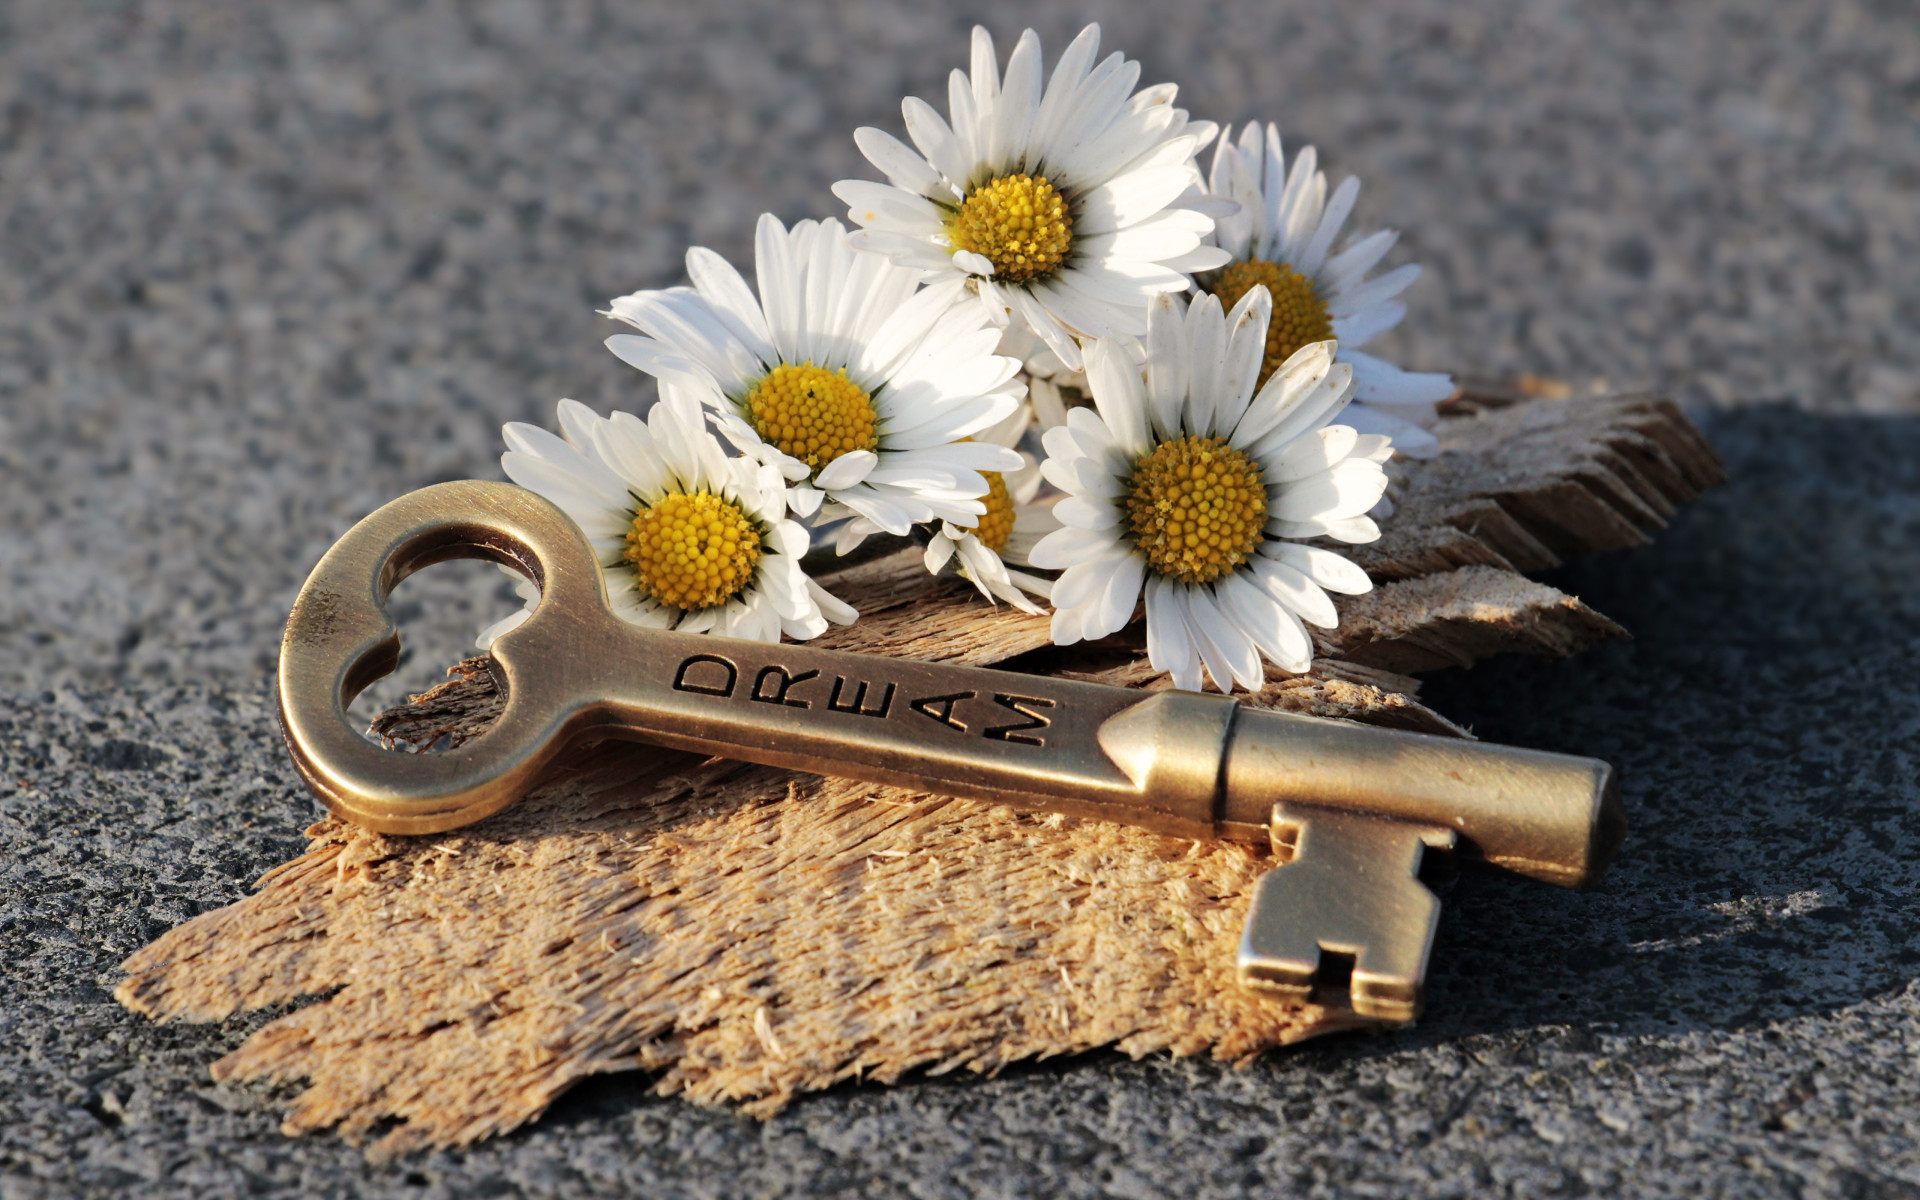 The dreams key and daisy flowers wallpaper 1920x1200